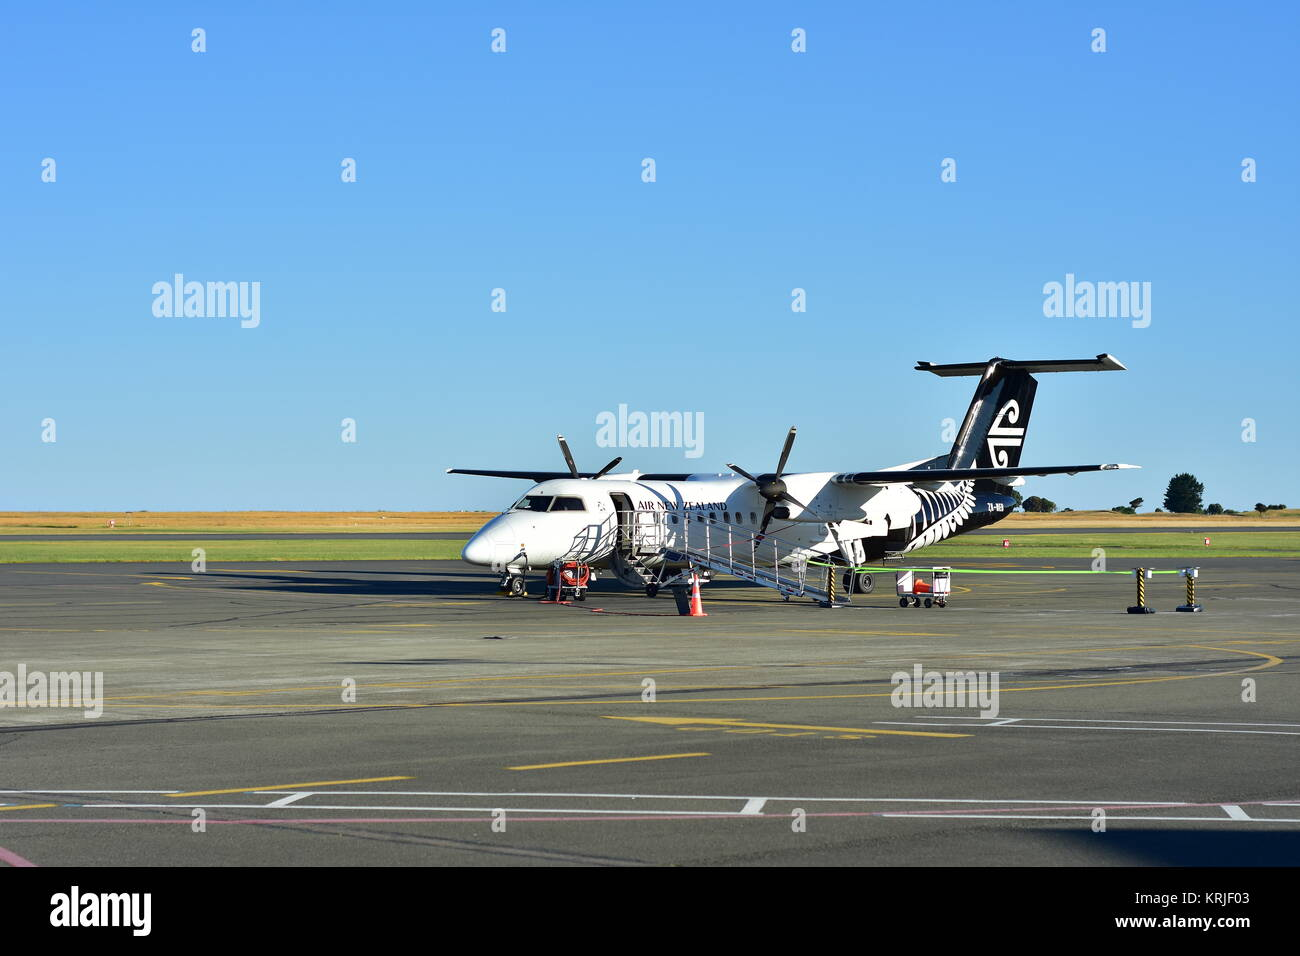 Turboprop twin engine plane in colors of  Air New Zealand parked on concrete airstrip. - Stock Image